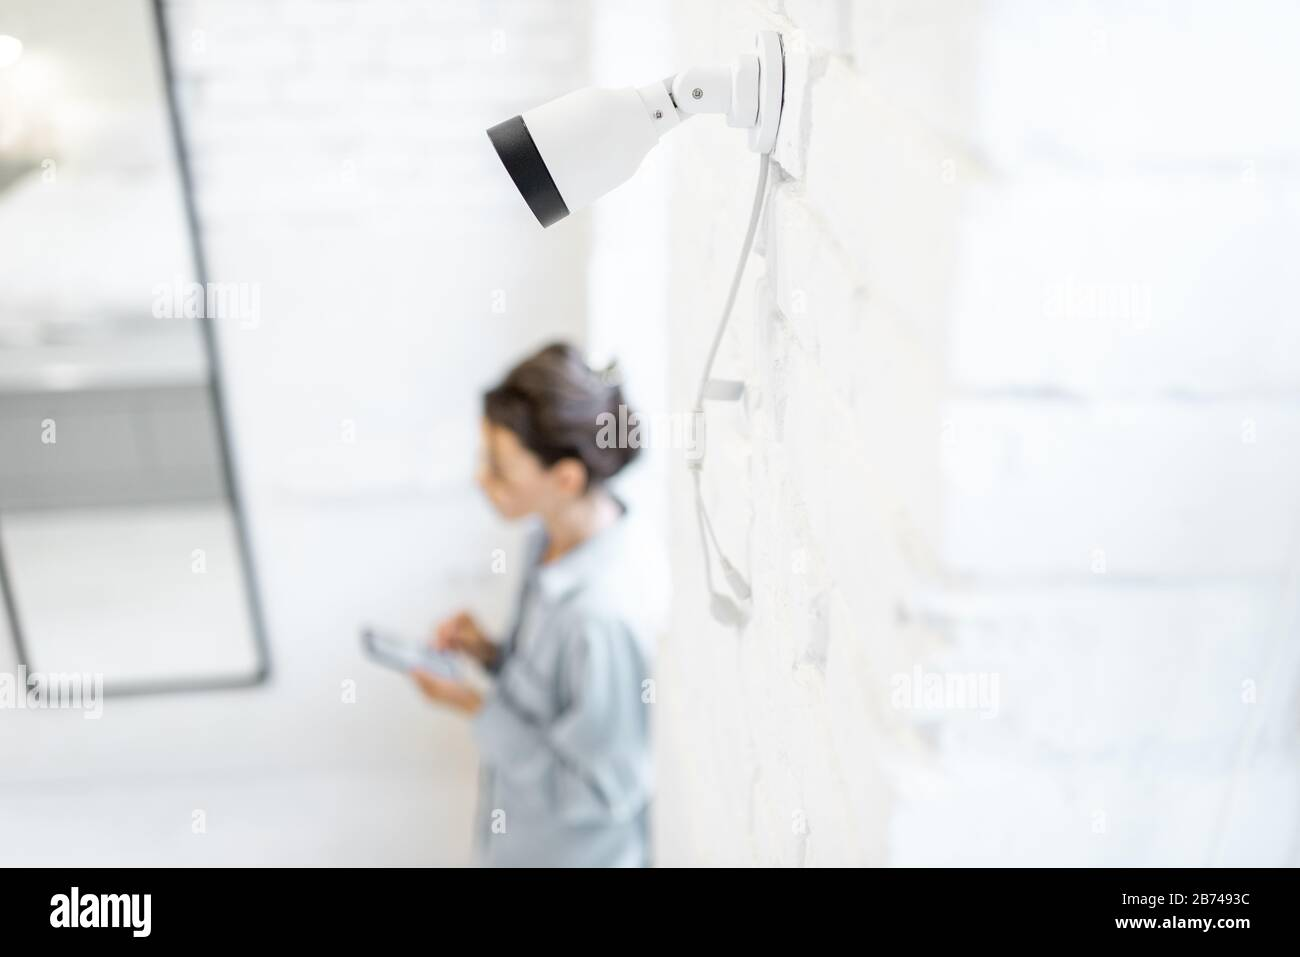 Woman controls home video surveillance with a smartphone indoors, view from the above and ip camera on the foreground. Concept of a wireless home security systems Stock Photo